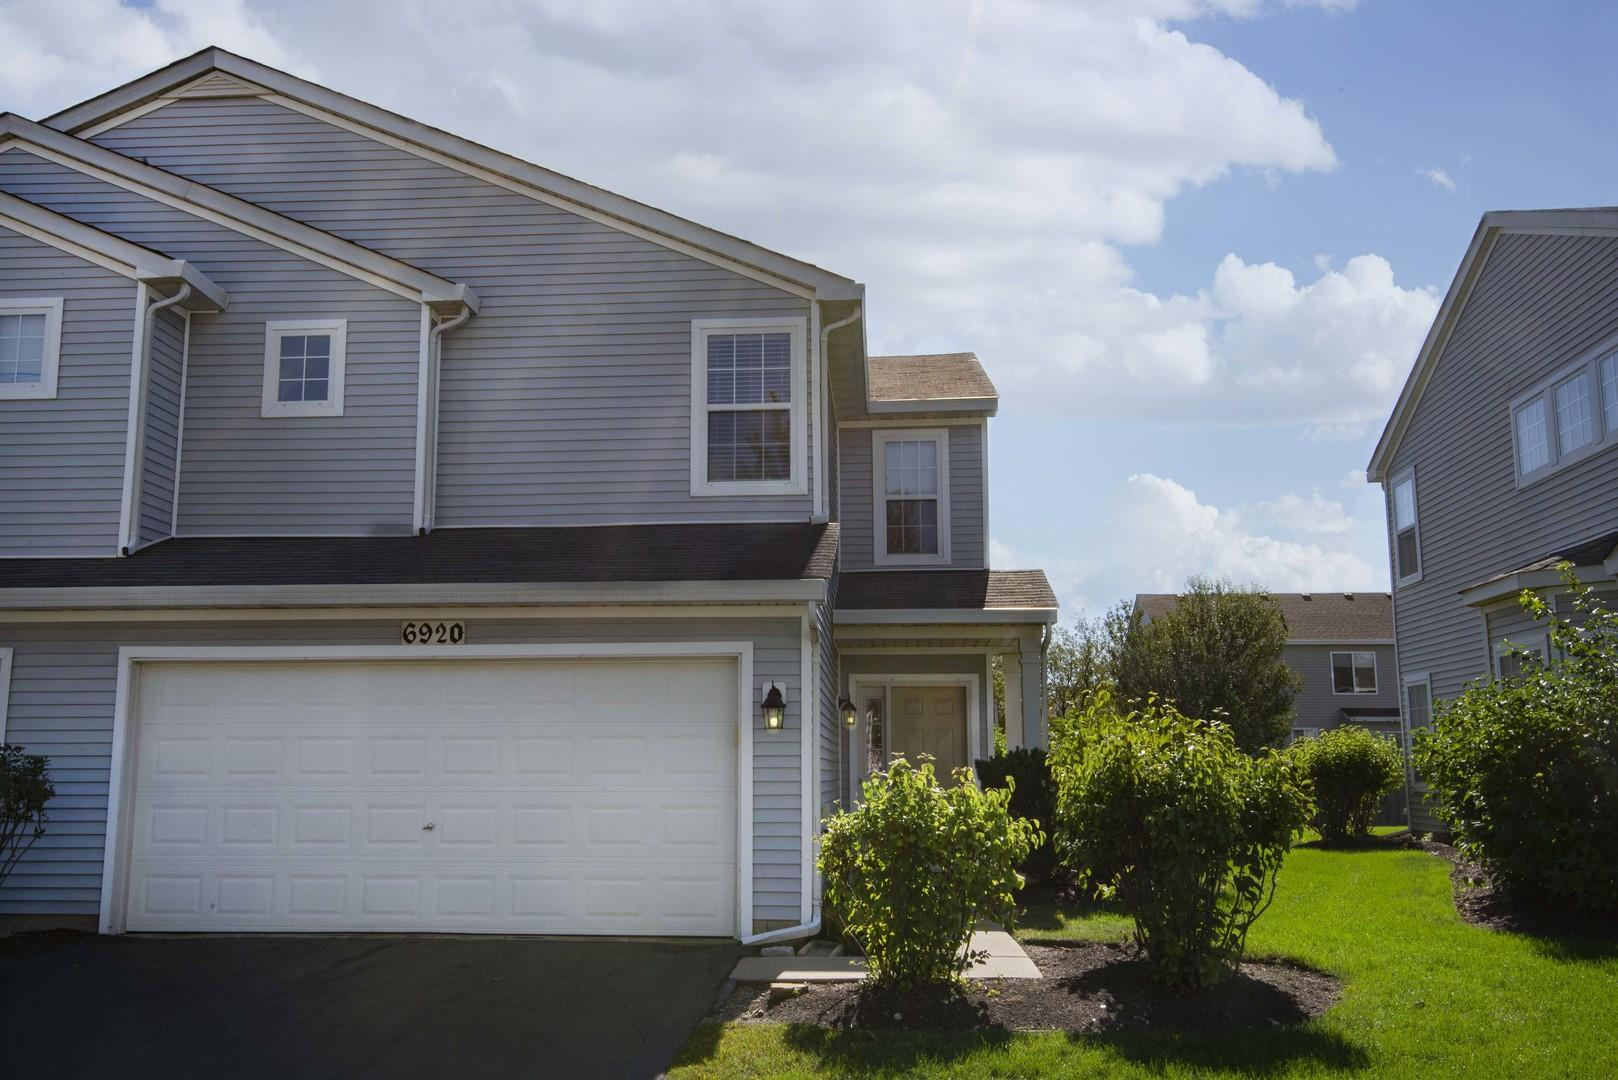 6920 CREEKSIDE Drive #6920, Plainfield, IL 60586 - #: 10878098